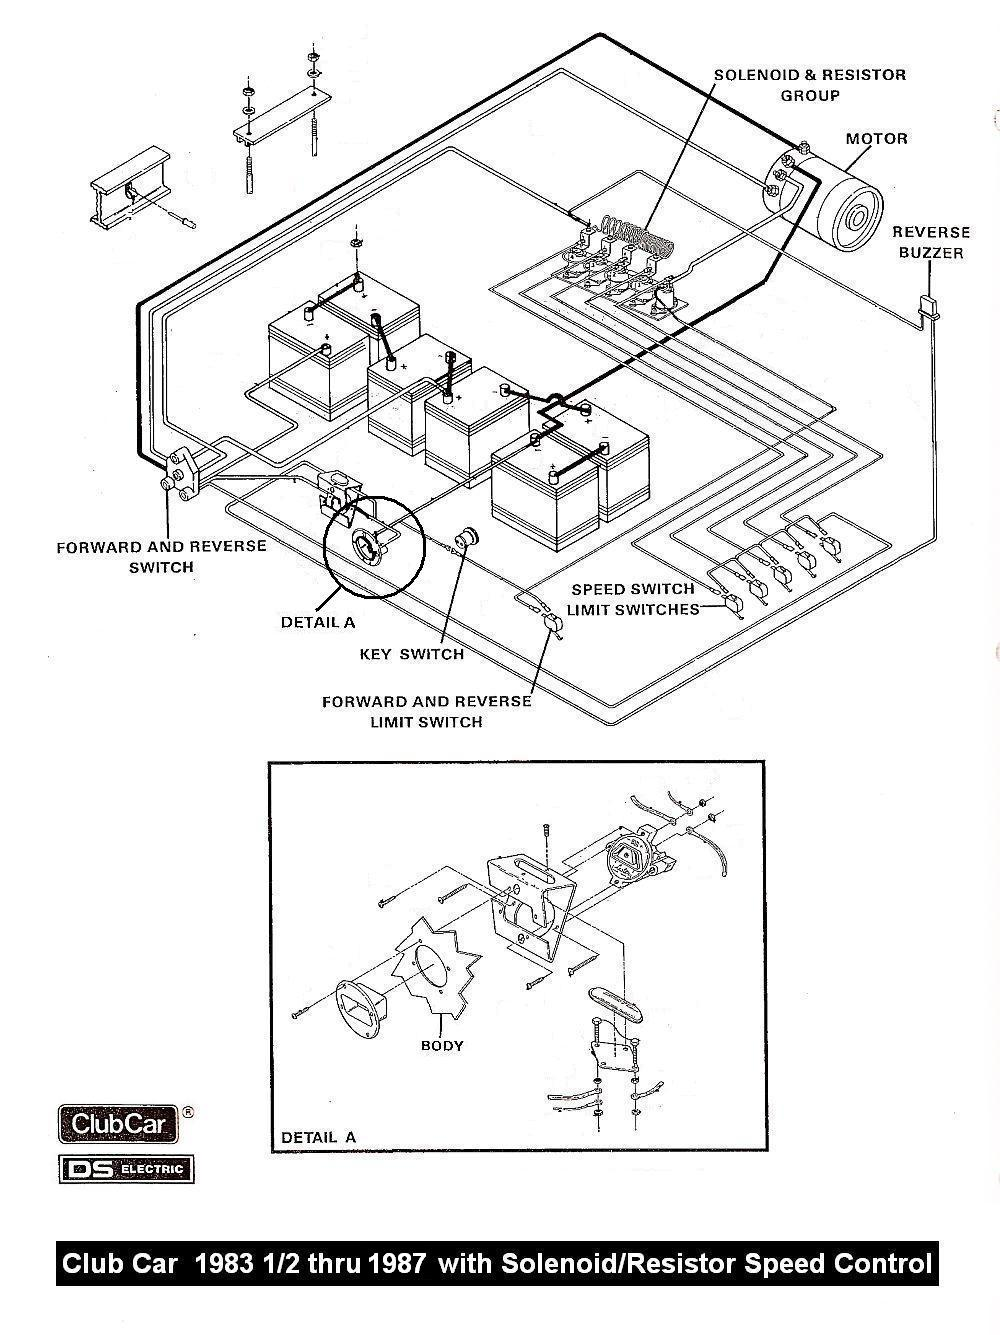 5qzsj Honda 2 0 Honda Crv Starting in addition Schematic Symbol For Radiator furthermore 1996 Volkswagen Cabrio Golf Jetta Air Conditioner Heater Wiring Diagram And Schematics additionally 5idc1 Buick Regal Custom Will Not Start further Discussion T16272 ds549908. on 2000 accord electric fan wiring diagram